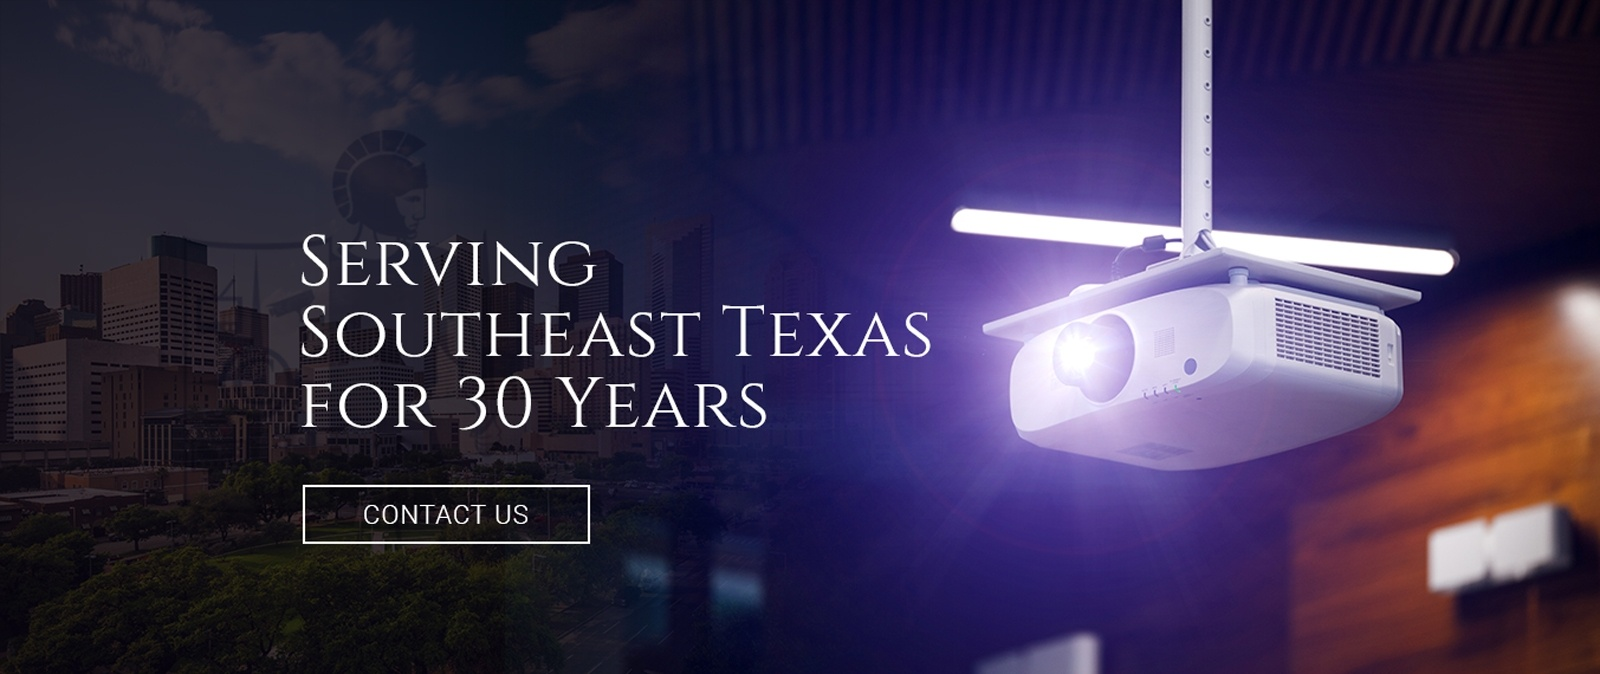 Centurion Alarm Services, Inc - Serving Southeast Texas for 30 Years